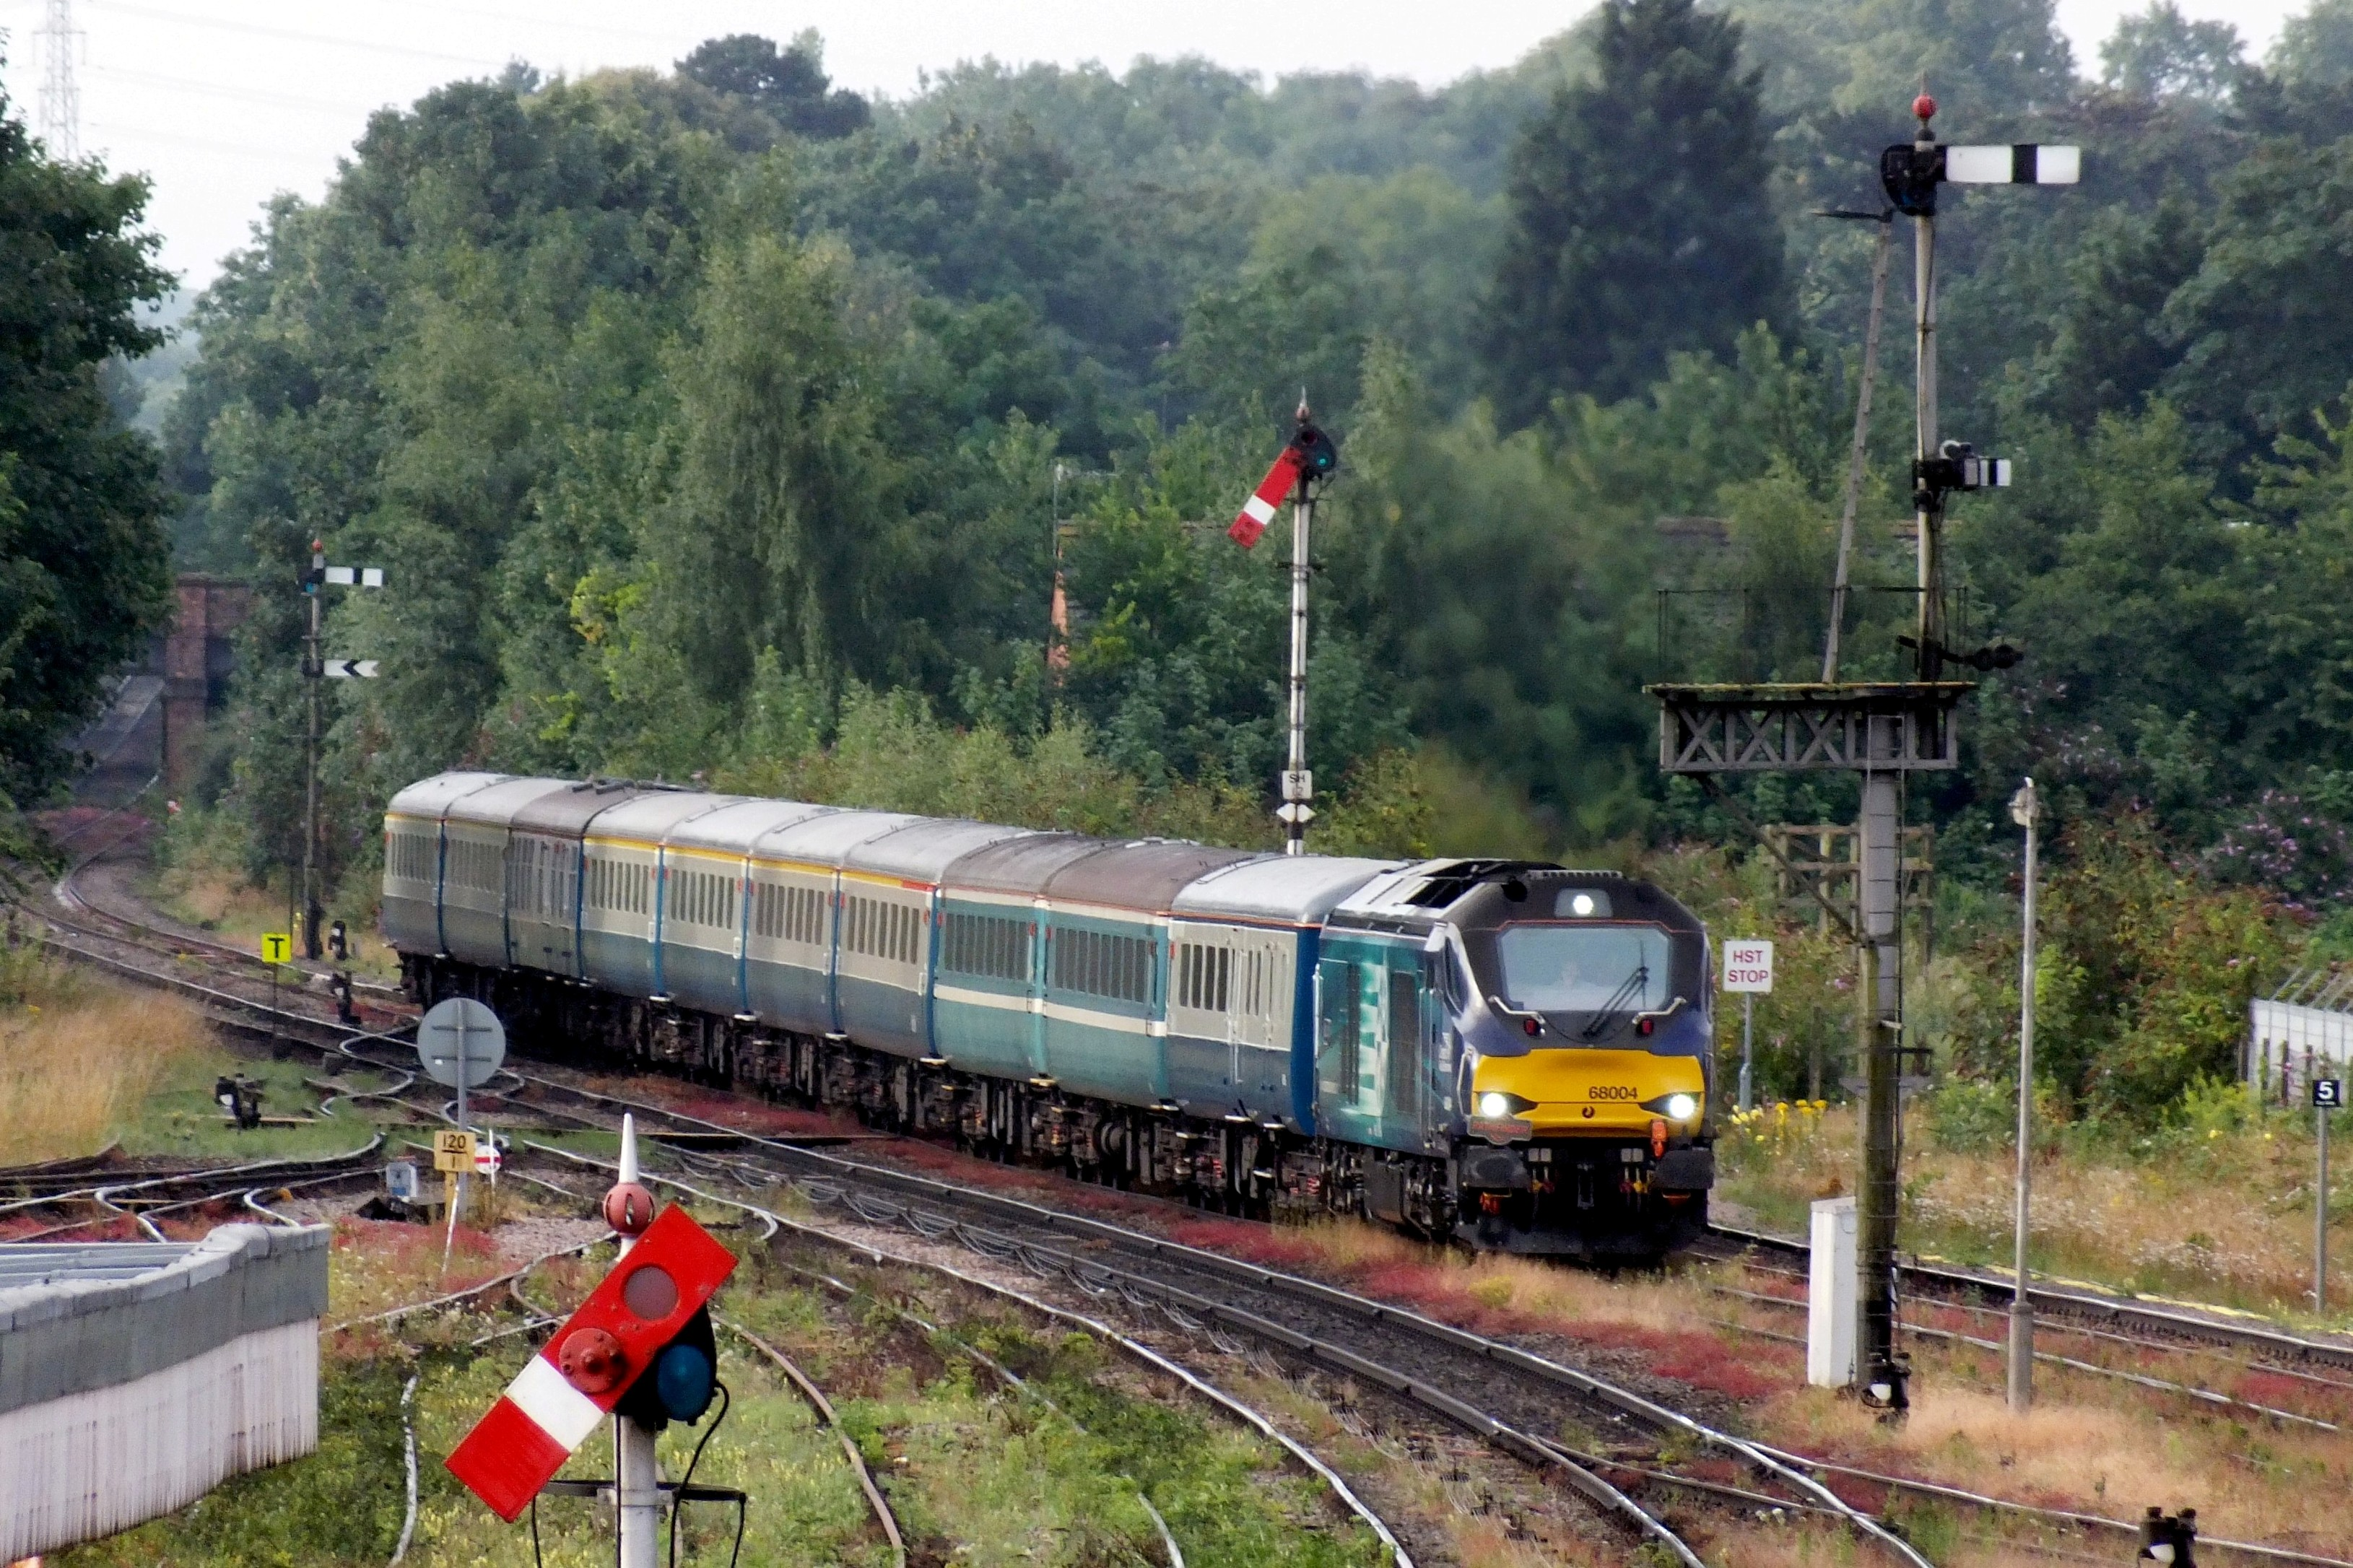 22 July 2017 Shrub Hill 105.jpg